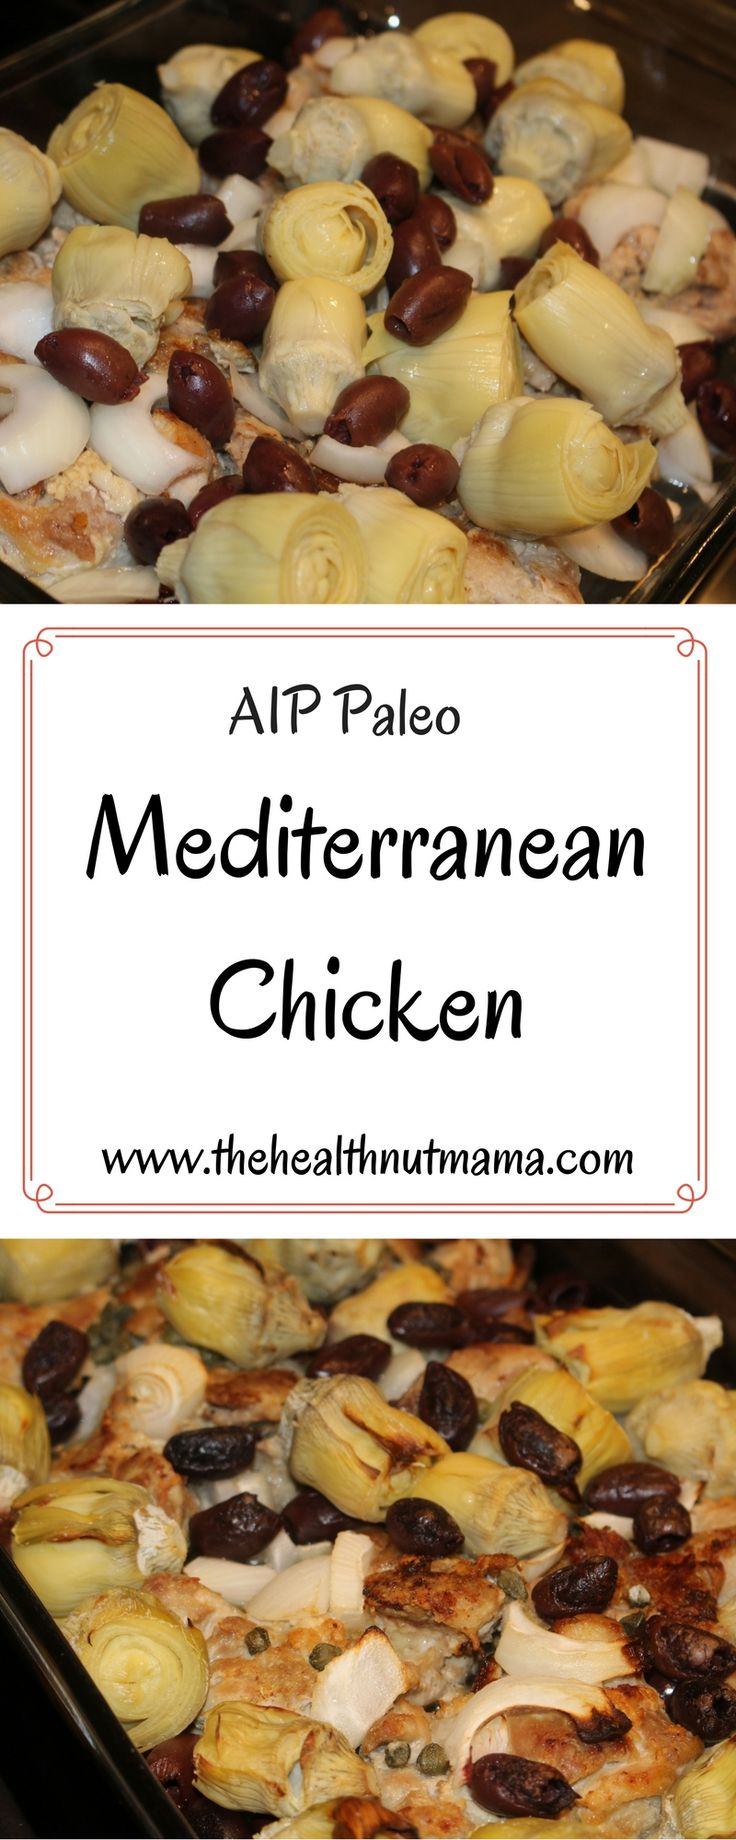 Quick & Delicious AIP Paleo One Dish Meal. Mediterranean Chicken! www.thehealthnutmama.com